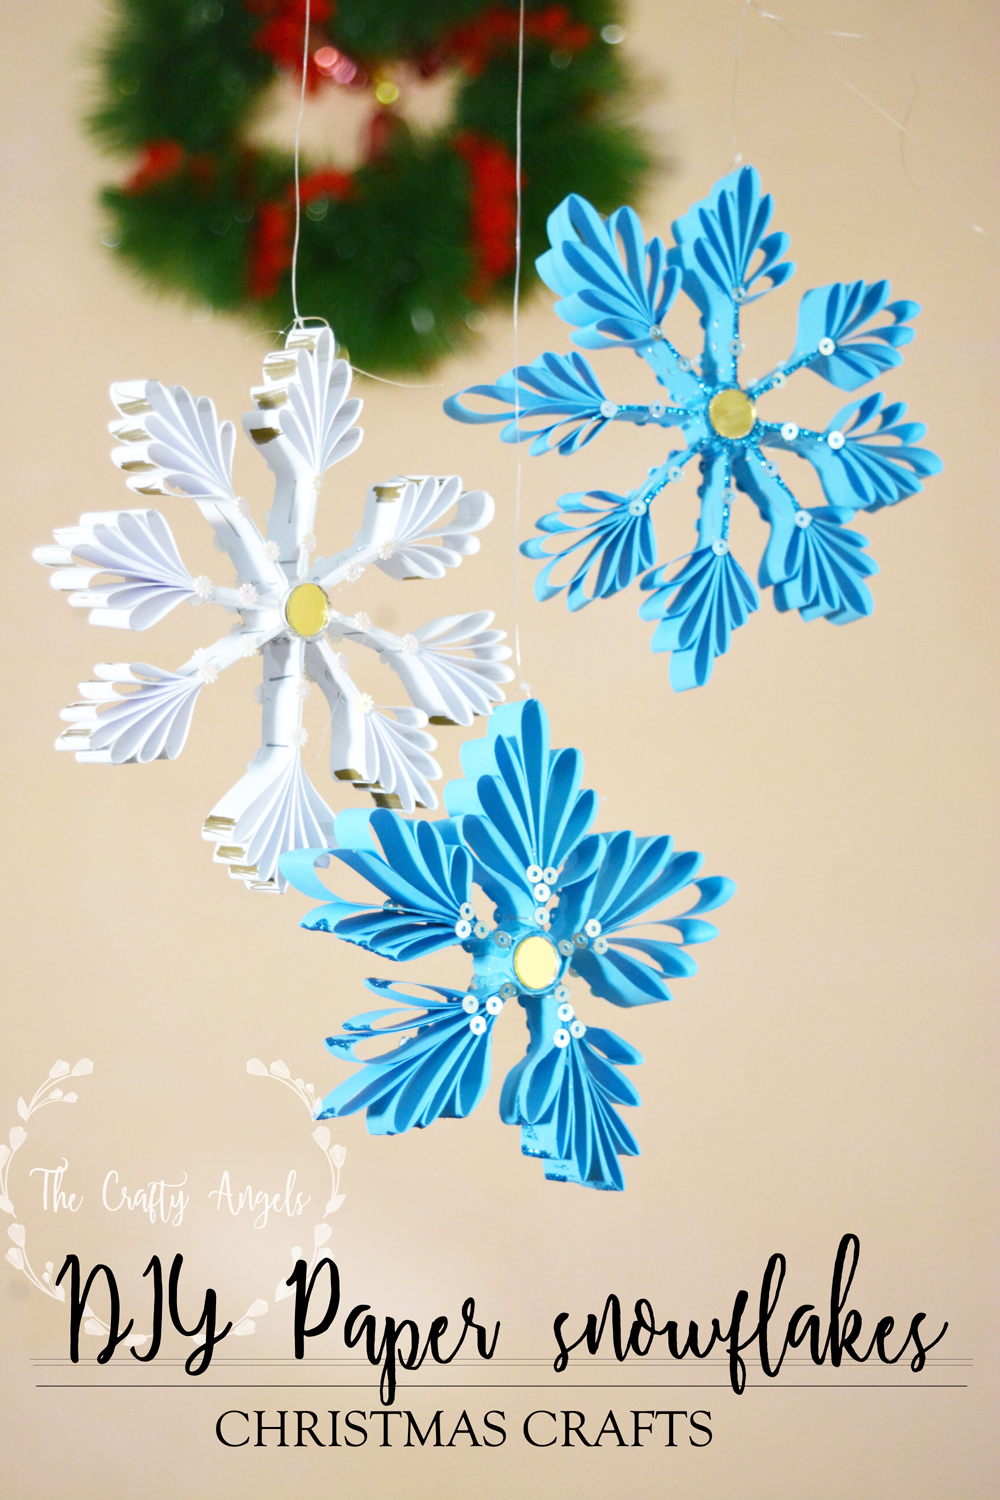 DIY Paper snowflakes Christmas Ornaments Tutorial - The